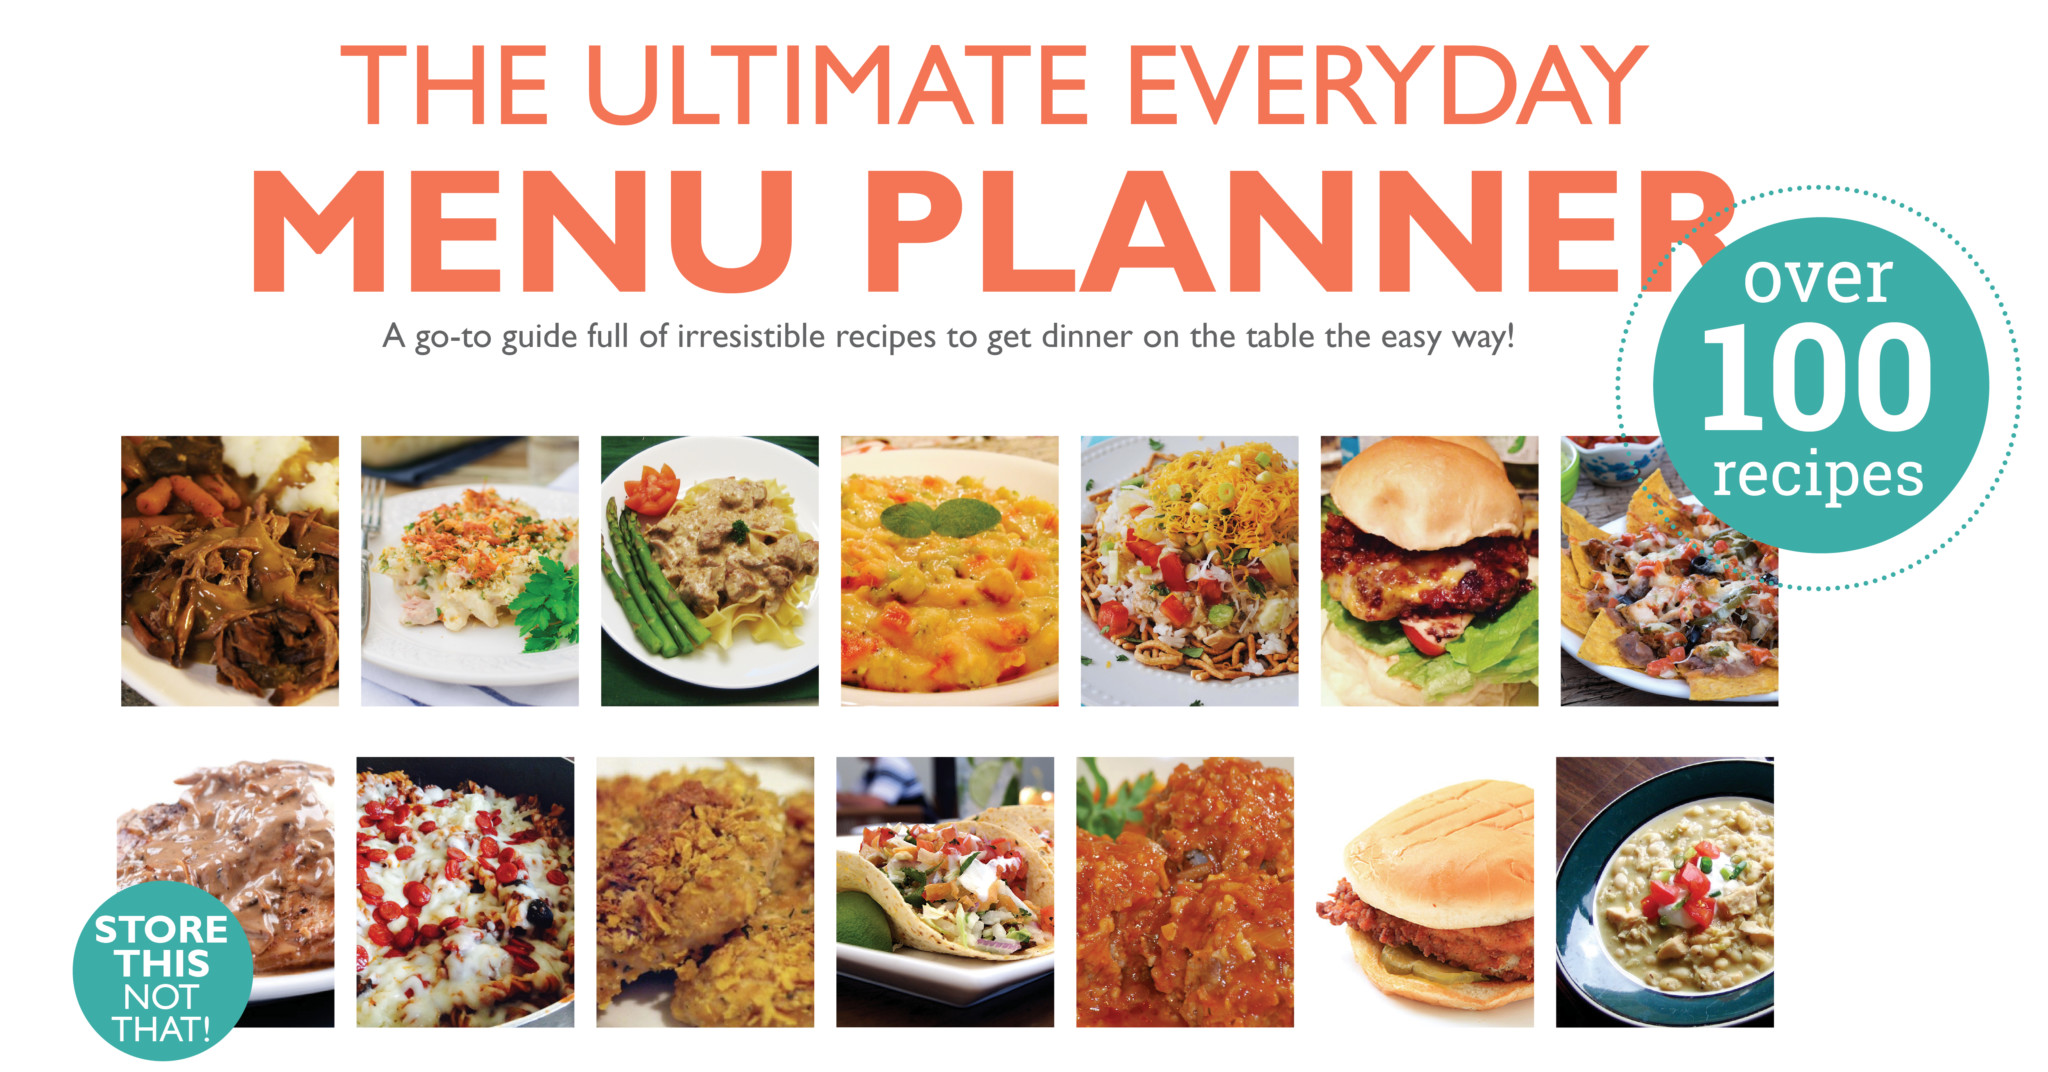 Ultimate everyday menu planner store this not that forumfinder Gallery